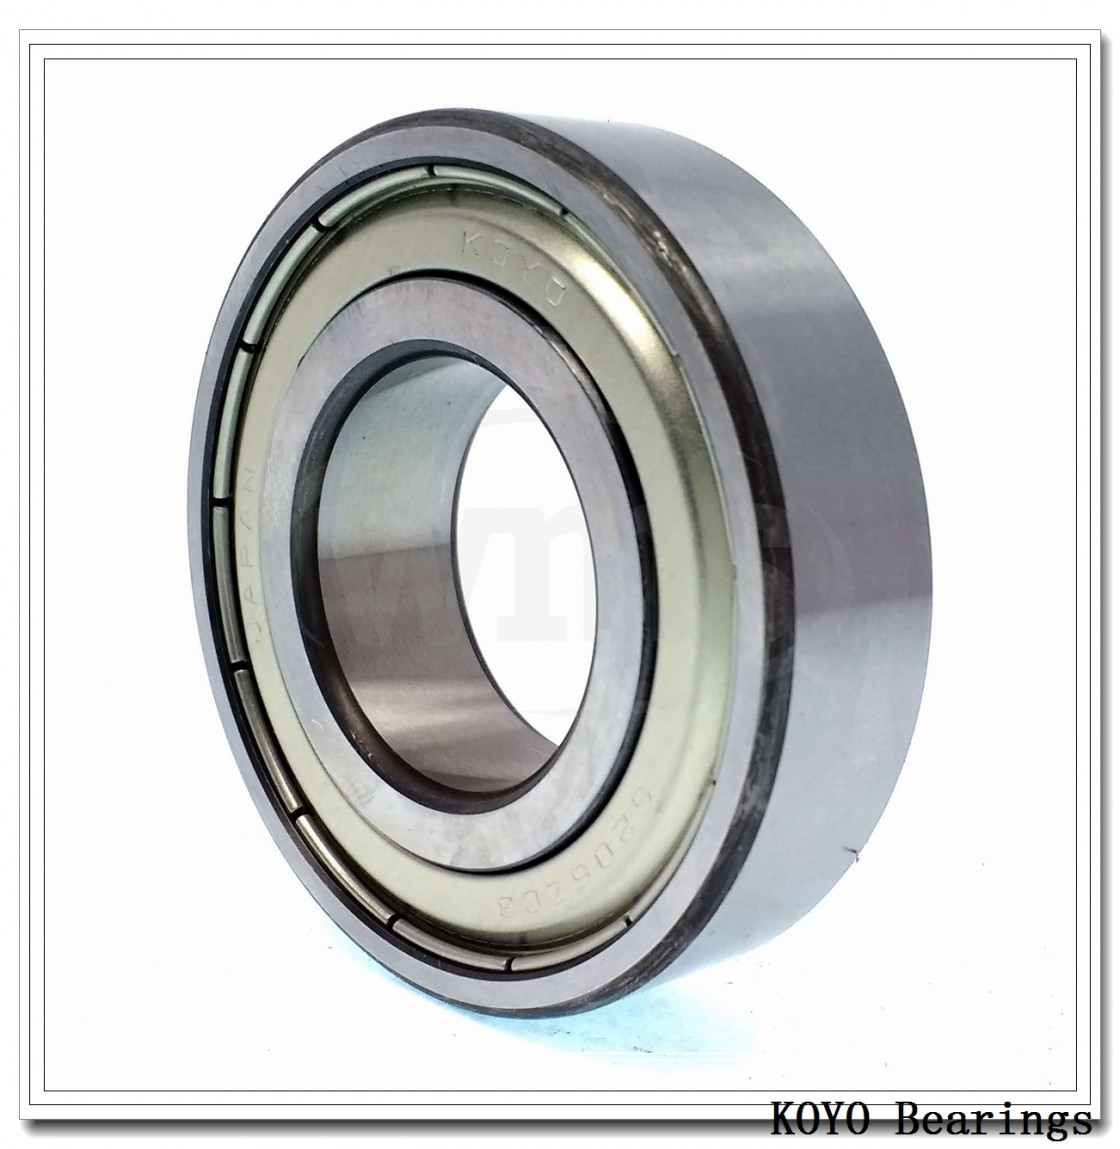 105 mm x 190 mm x 50 mm  NSK 2221 self aligning ball bearings